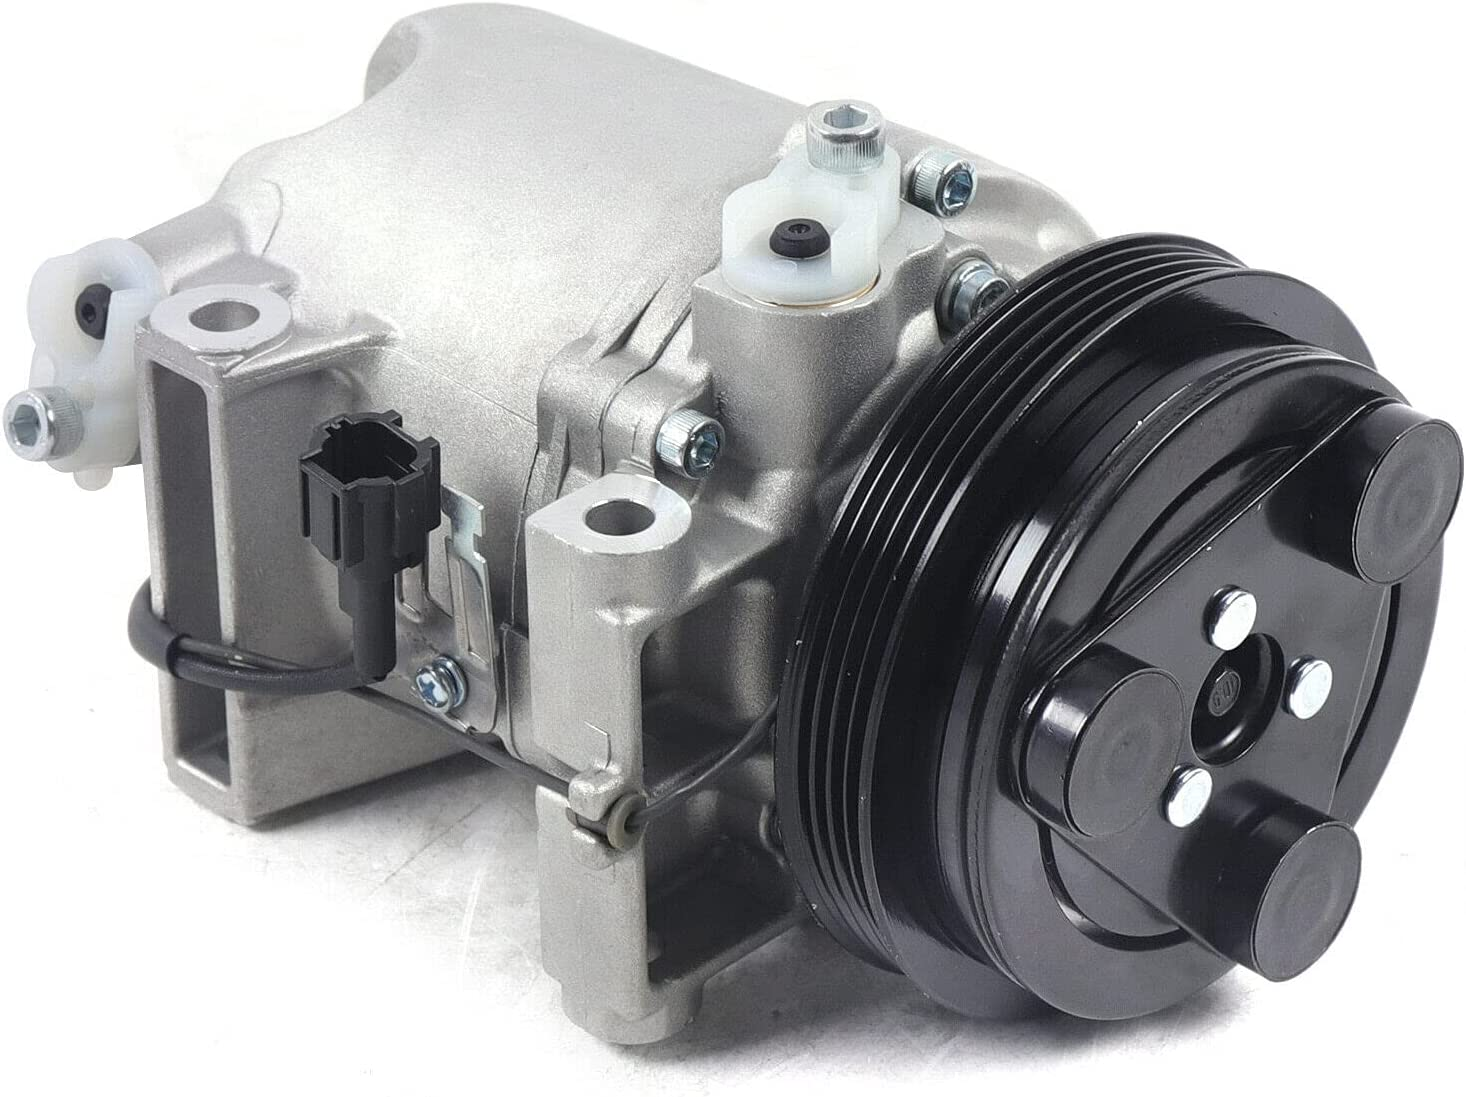 Kit-Air Conditioning Compressor W Clutch 11153C Co Fits High quality Ranking TOP1 Subbaru